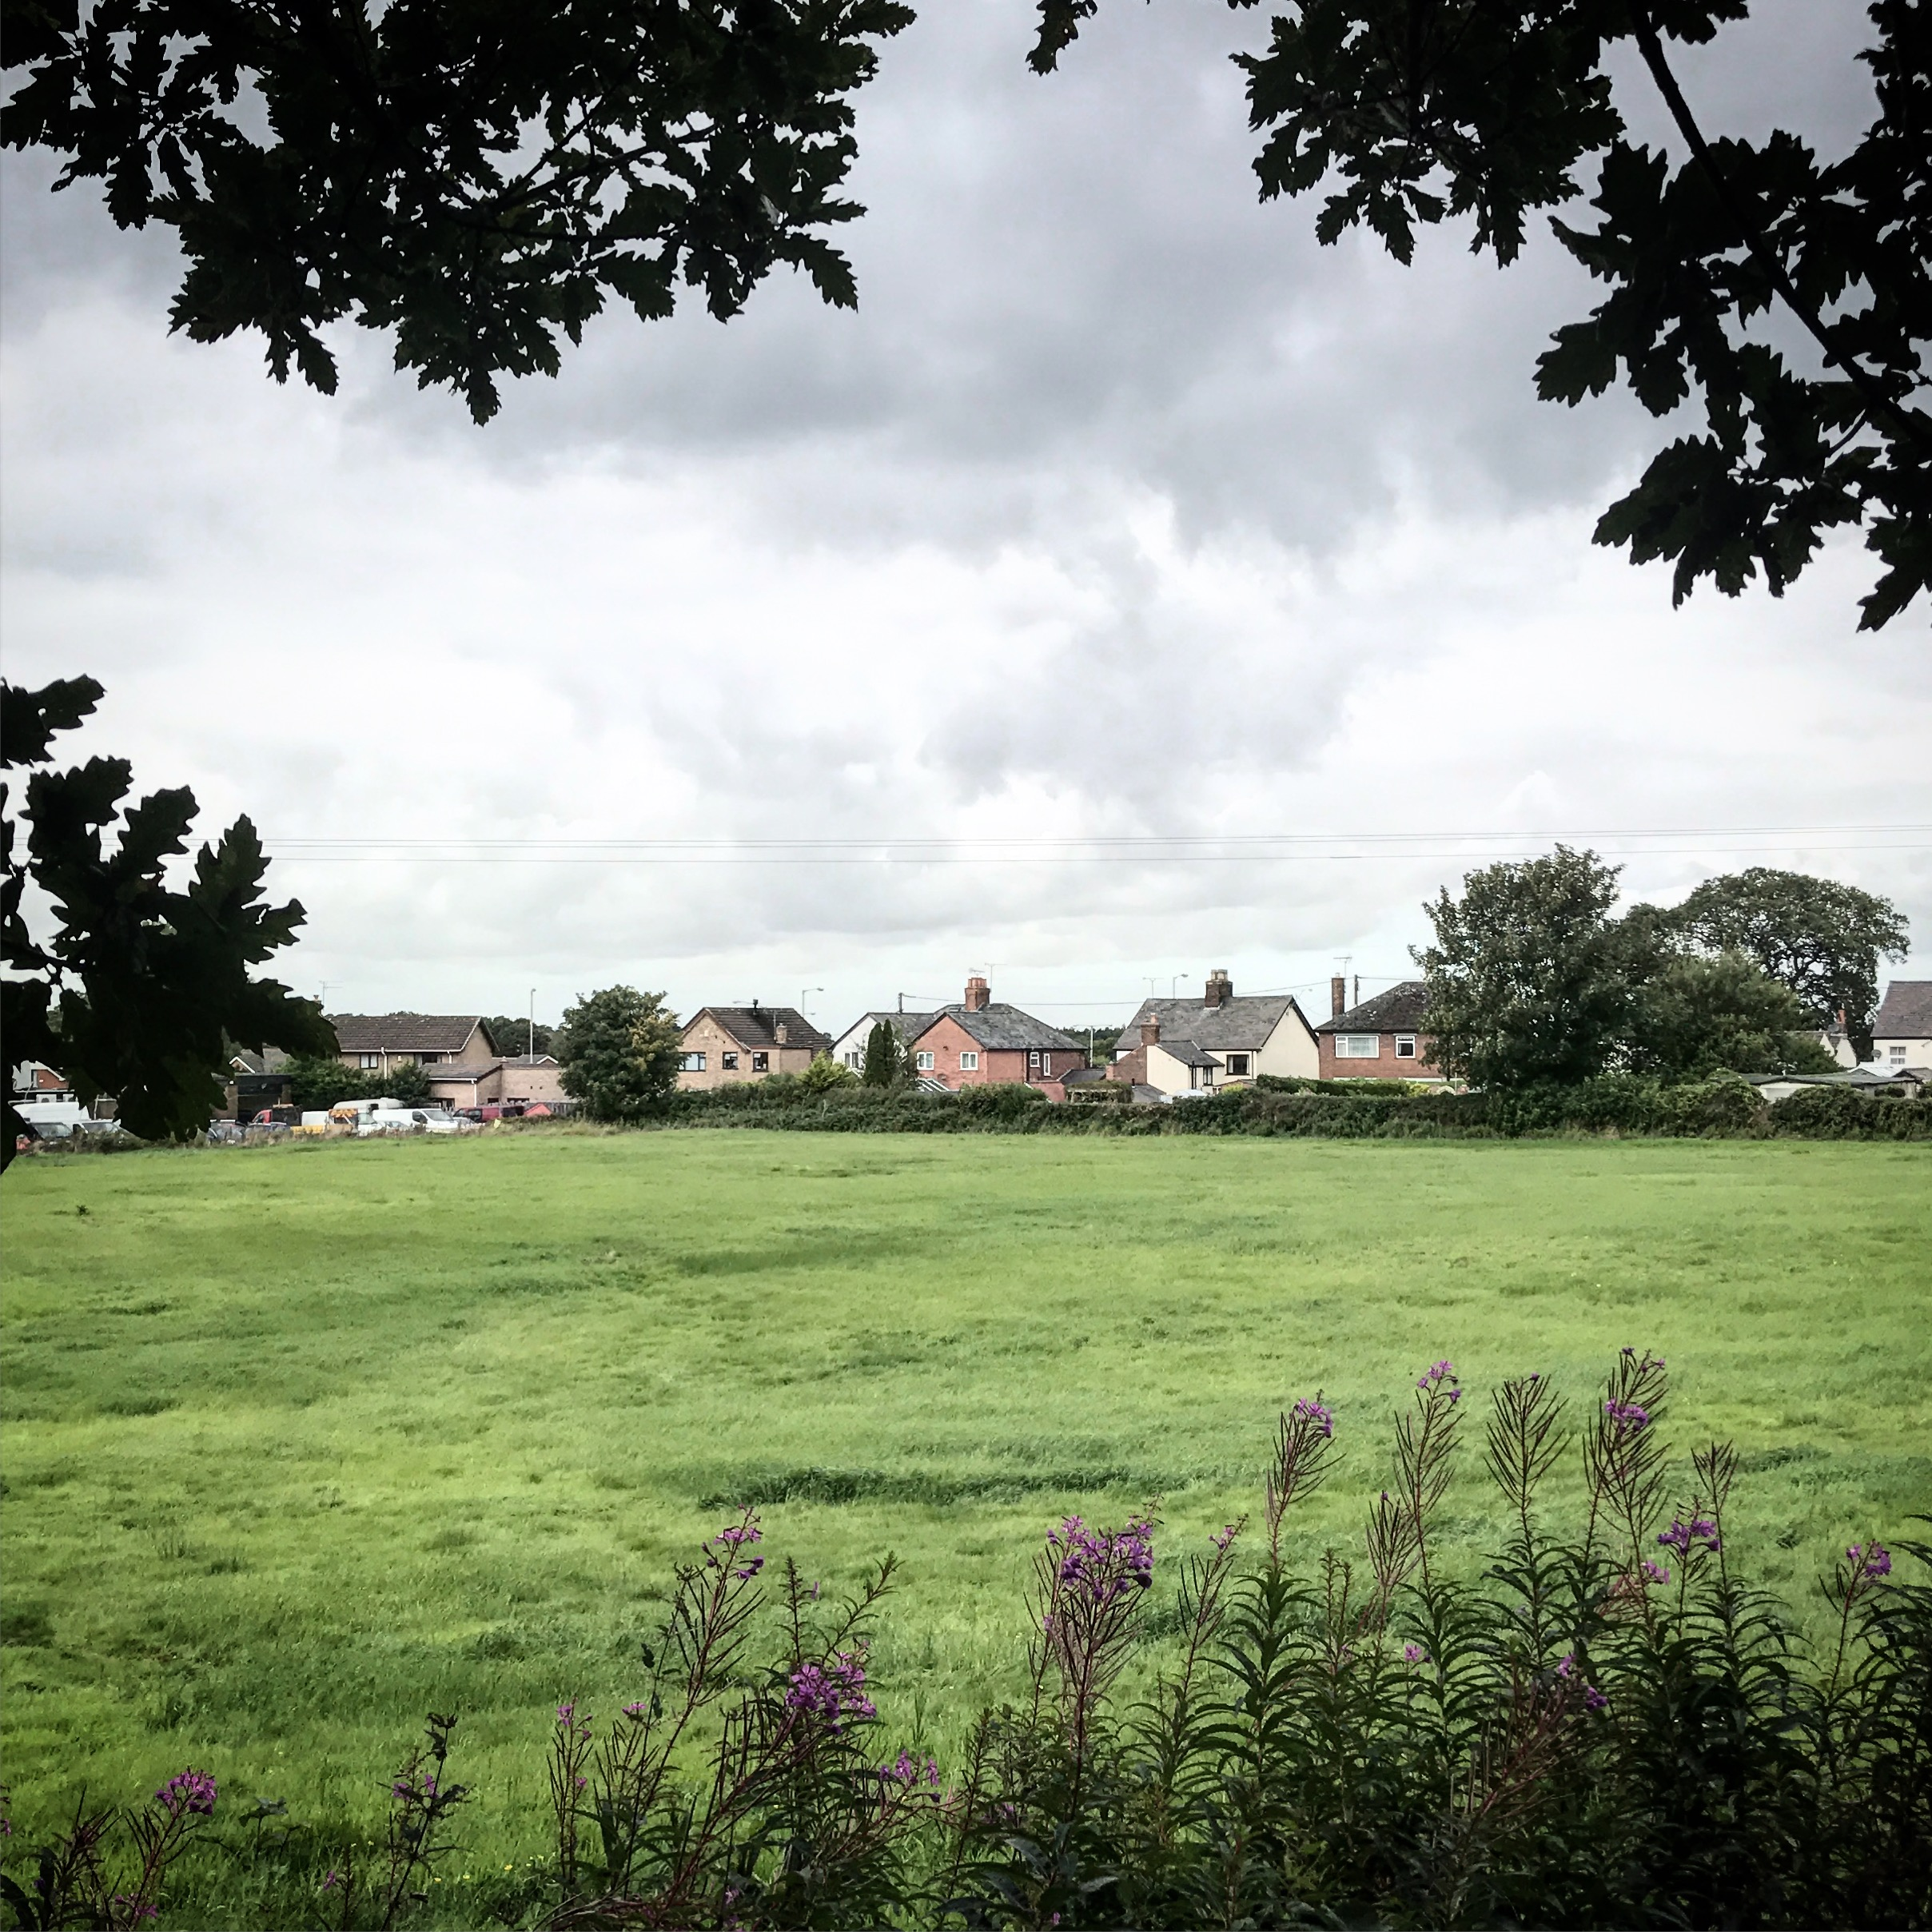 This field is one of two other sites proposed for development in Dobshill